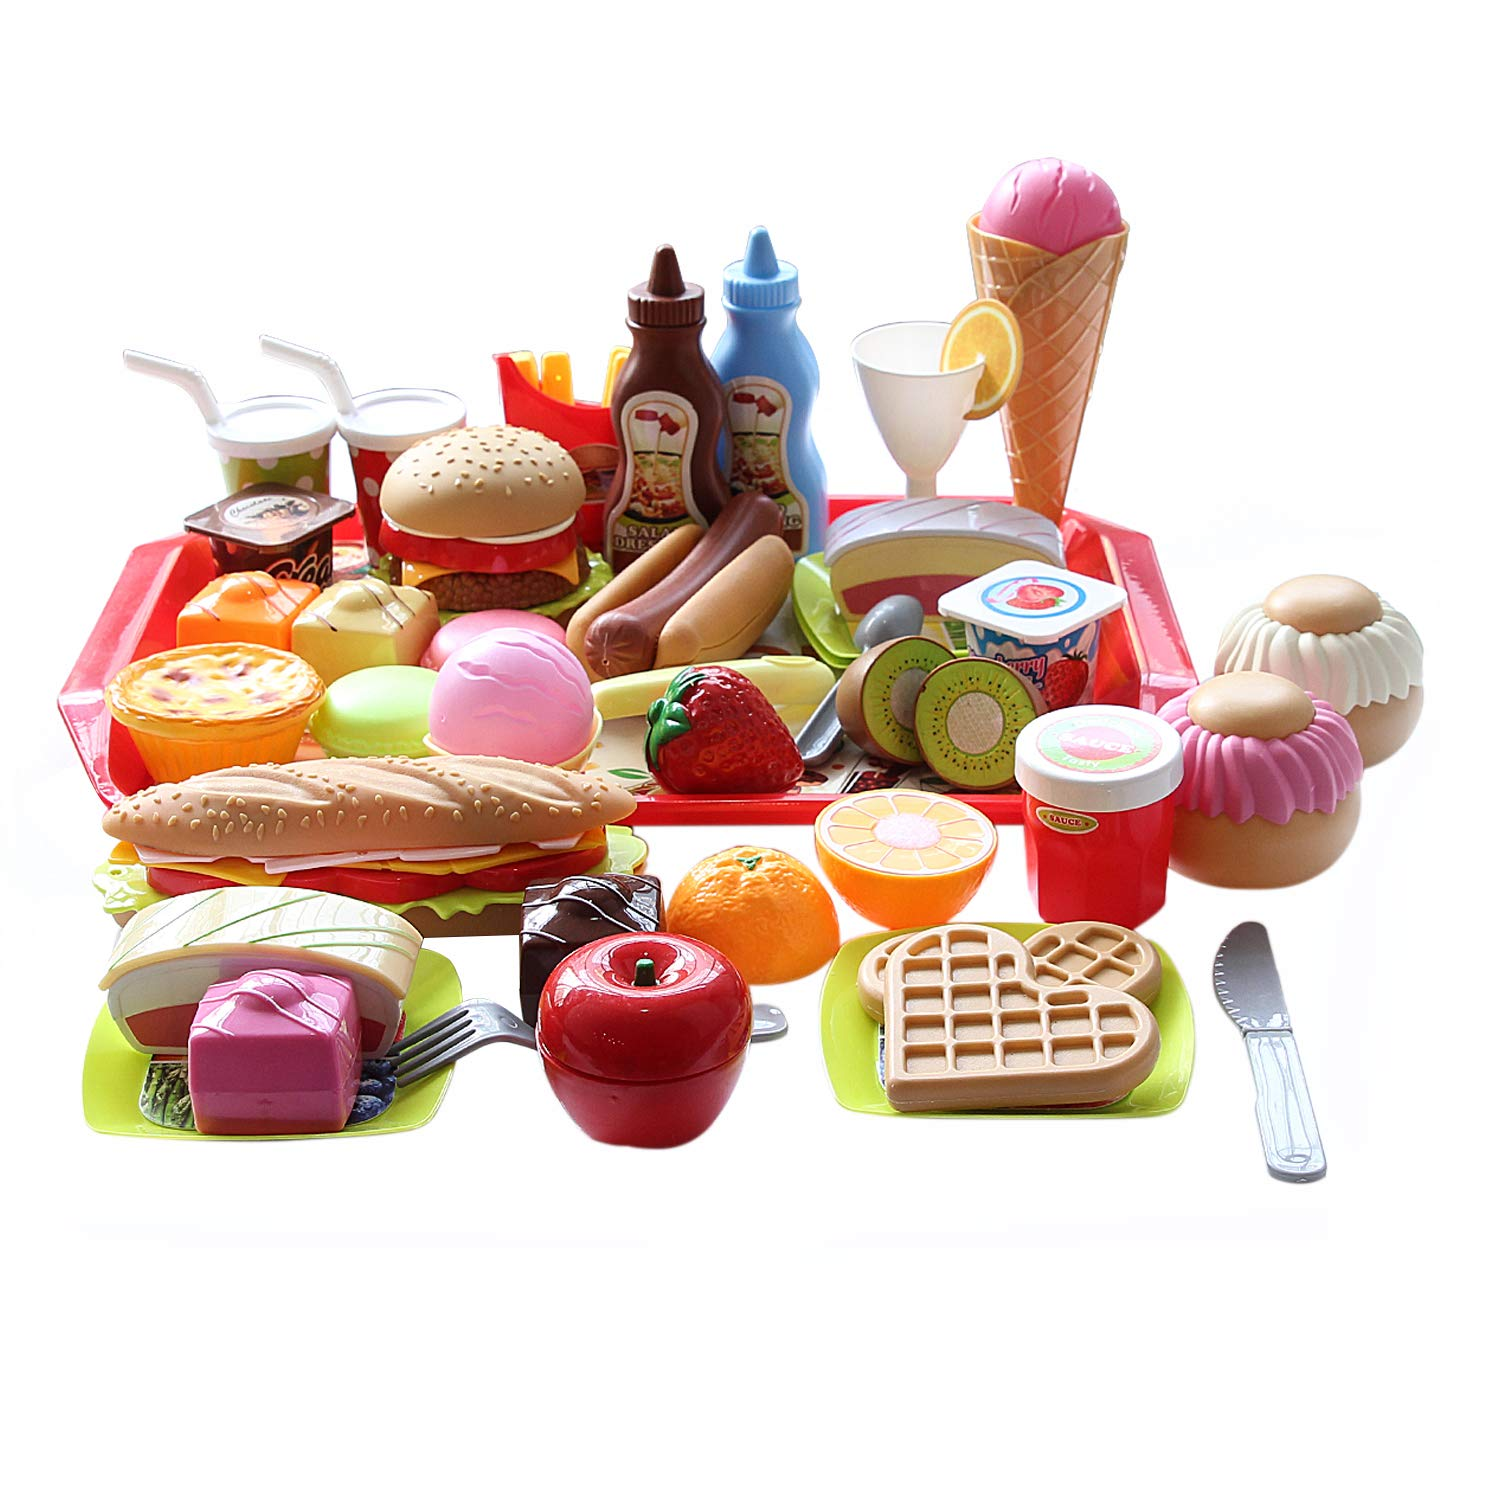 CatchStar Play Fast Food Durable Pretend Playset Food Hamburger French Fries Variety Toys Gift for Kid Toddlers